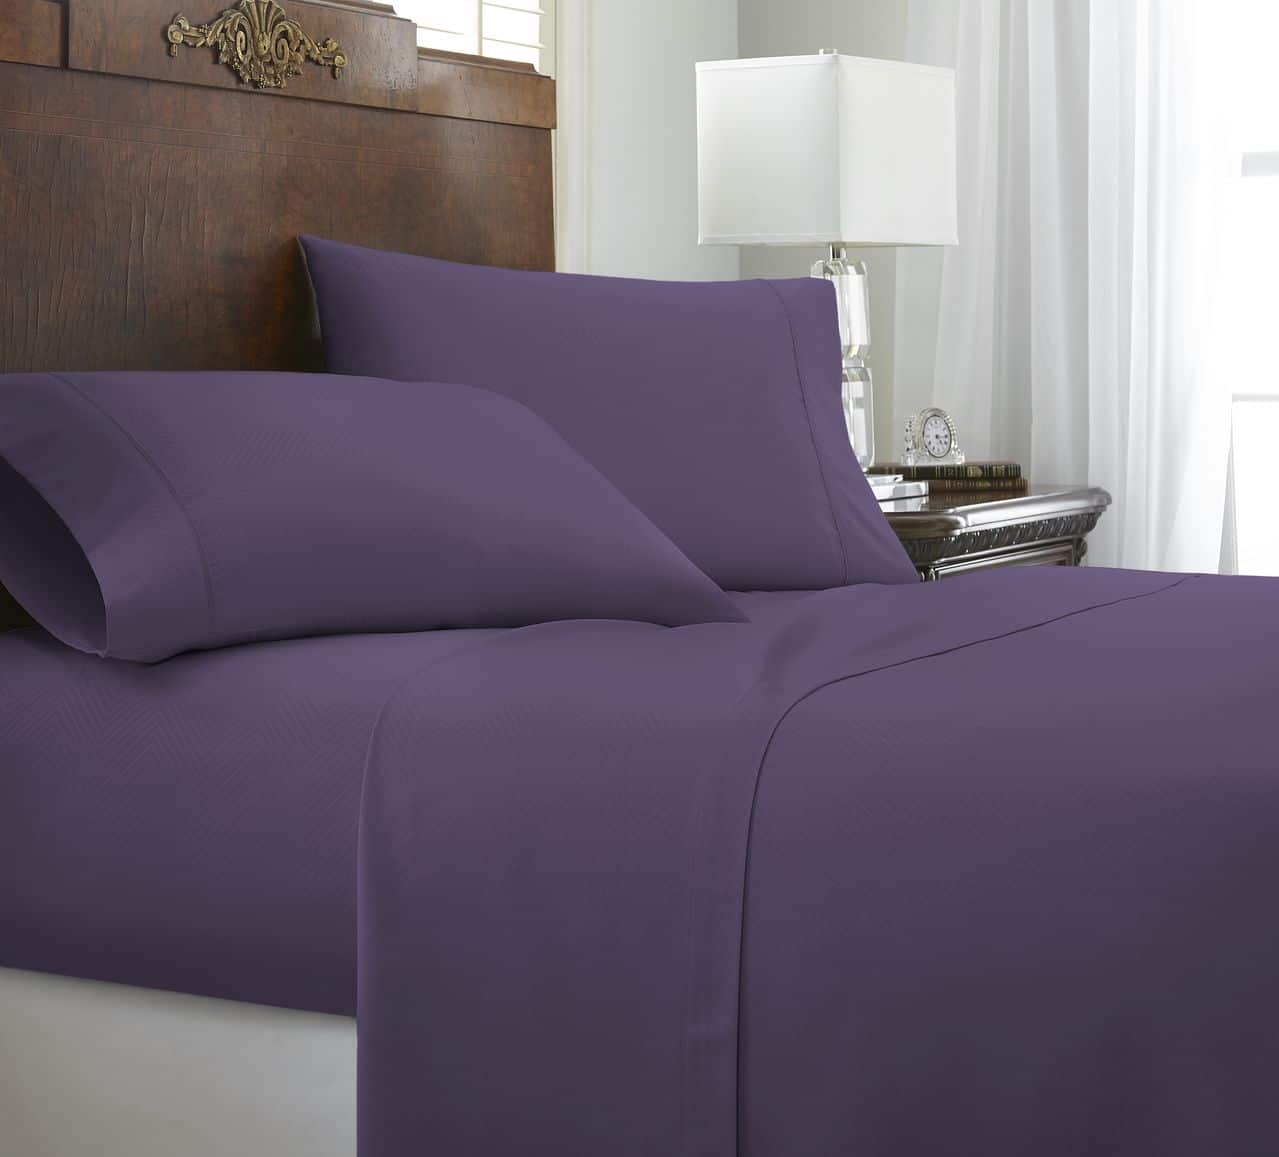 Becky Cameron Ultra Soft Hotel Quality 4 Piece Chevron Bed Sheet Set - Twin - Purple